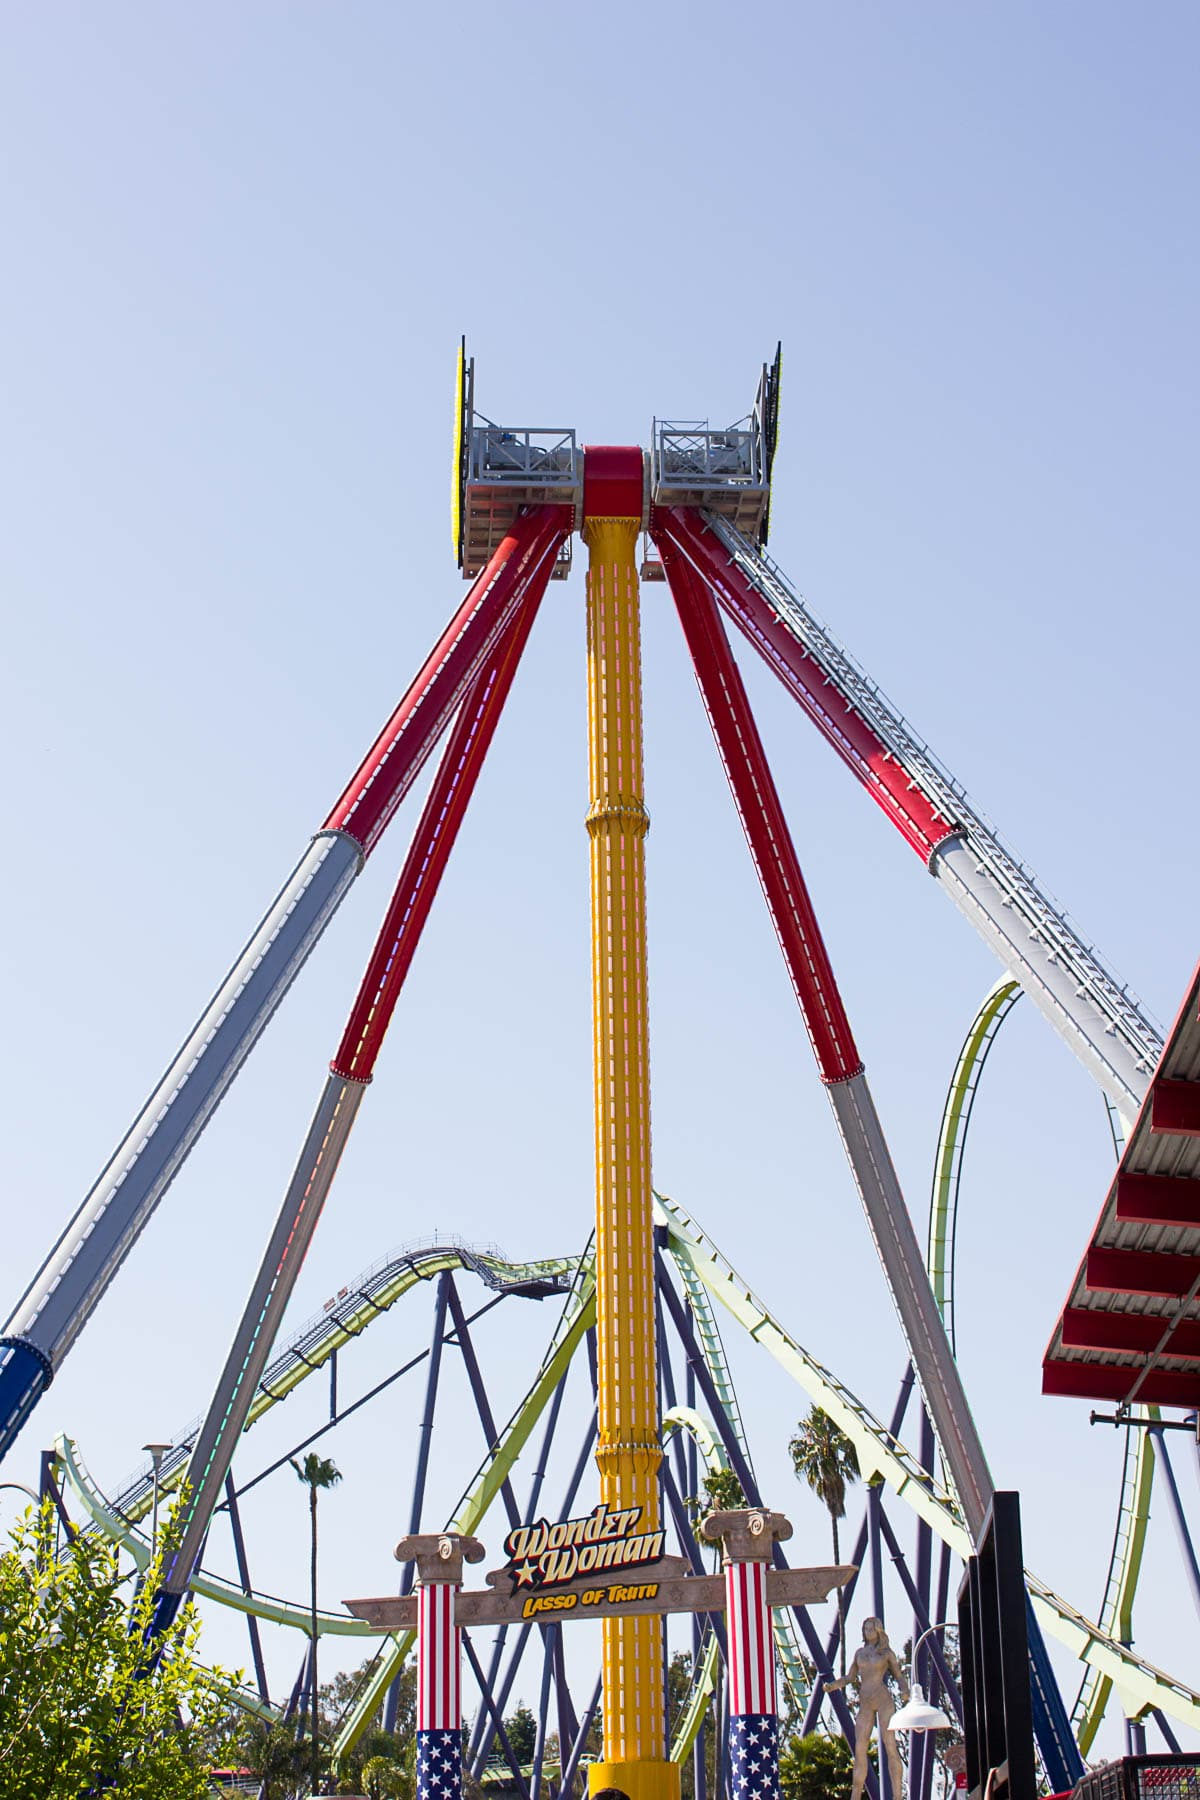 naptimereviewer-kia-six-flags